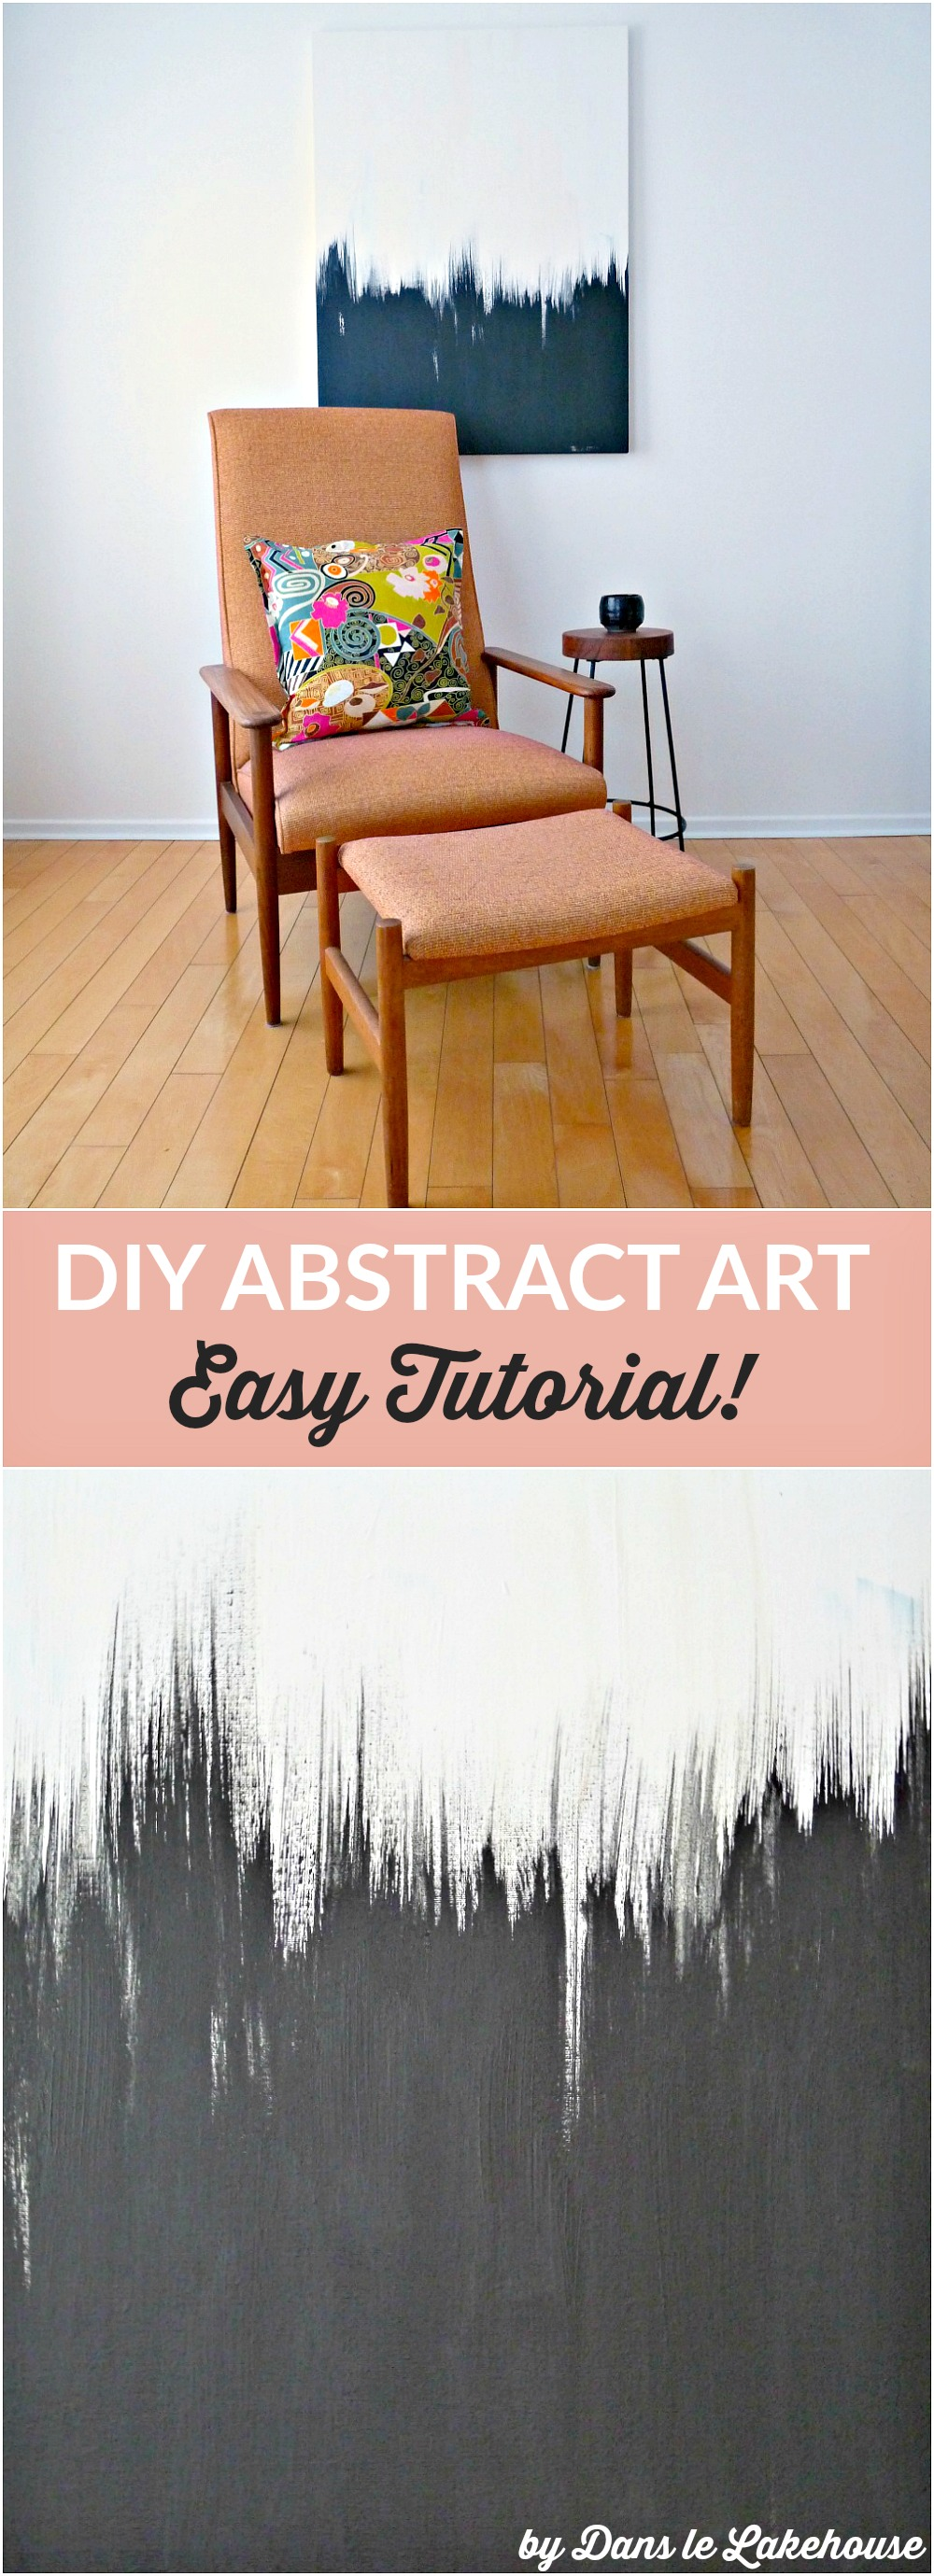 Easy DIY Art Anyone Can Do